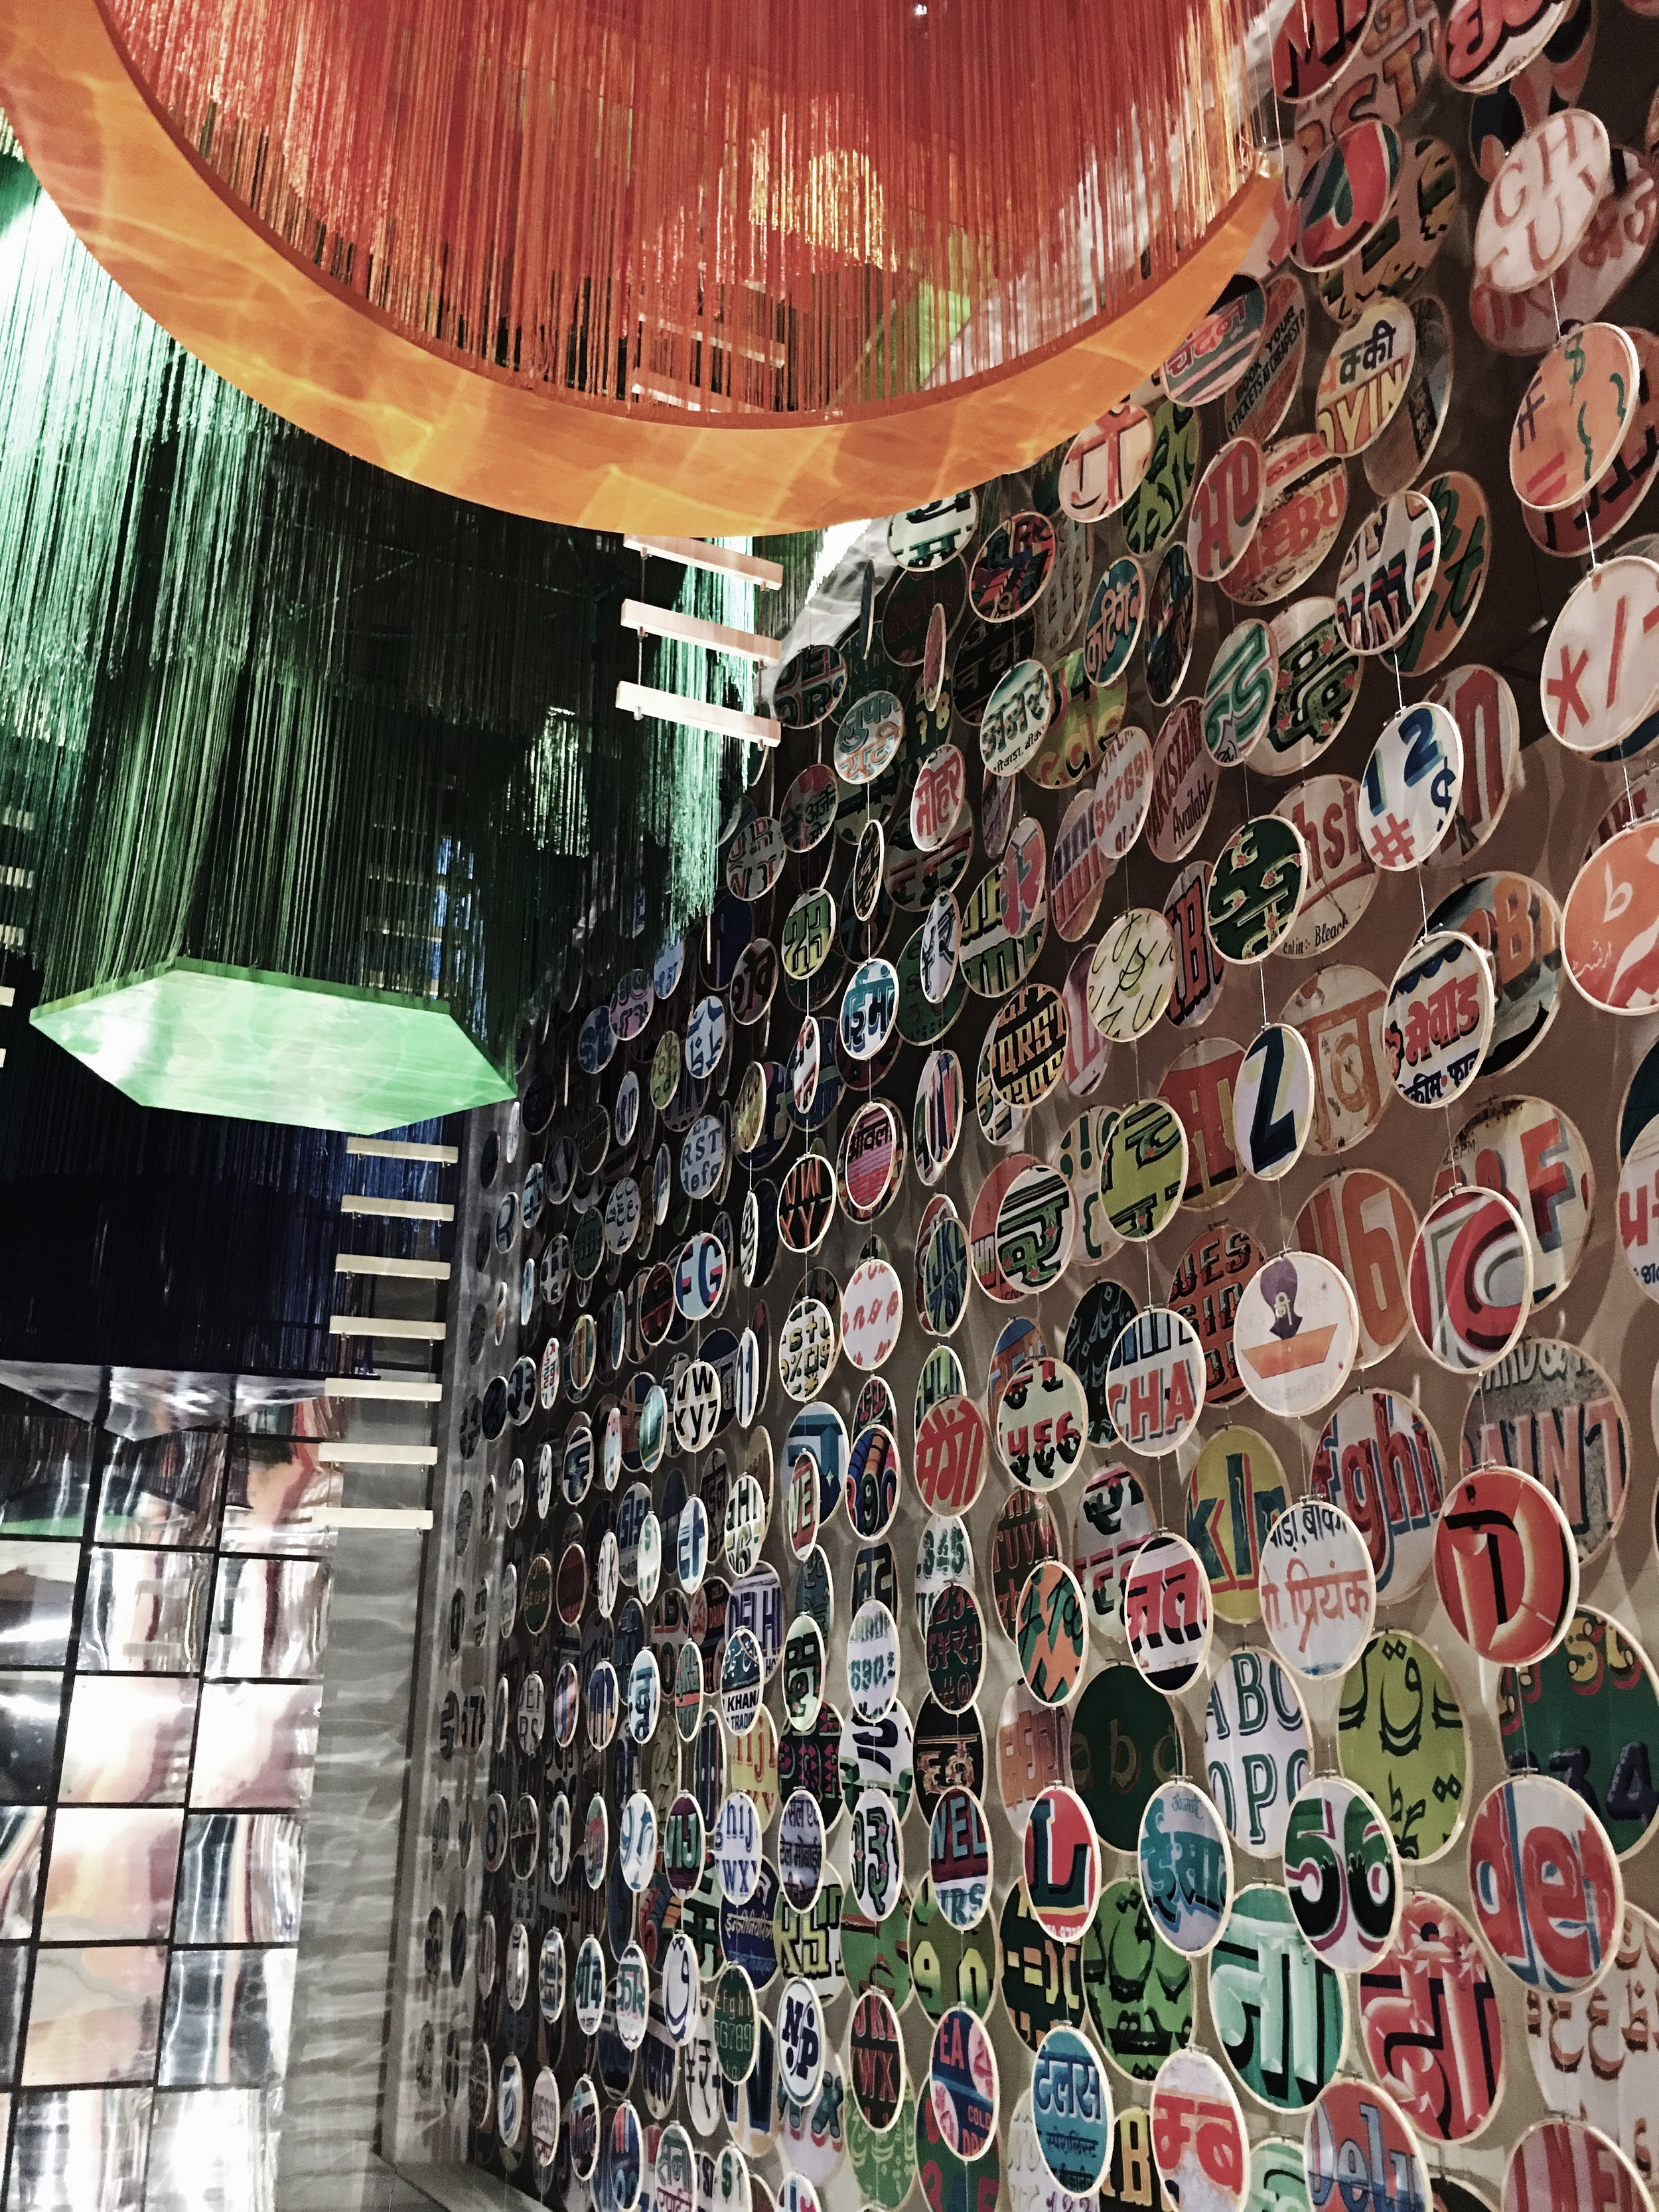 [India, 'Chakraview' designed by Sumant Jayakrishnan]   Installation constructed of circular forms, textiles, and mythology woven together to highlight India's diversity and to highlight the intersection of the ancient and the modern in design.